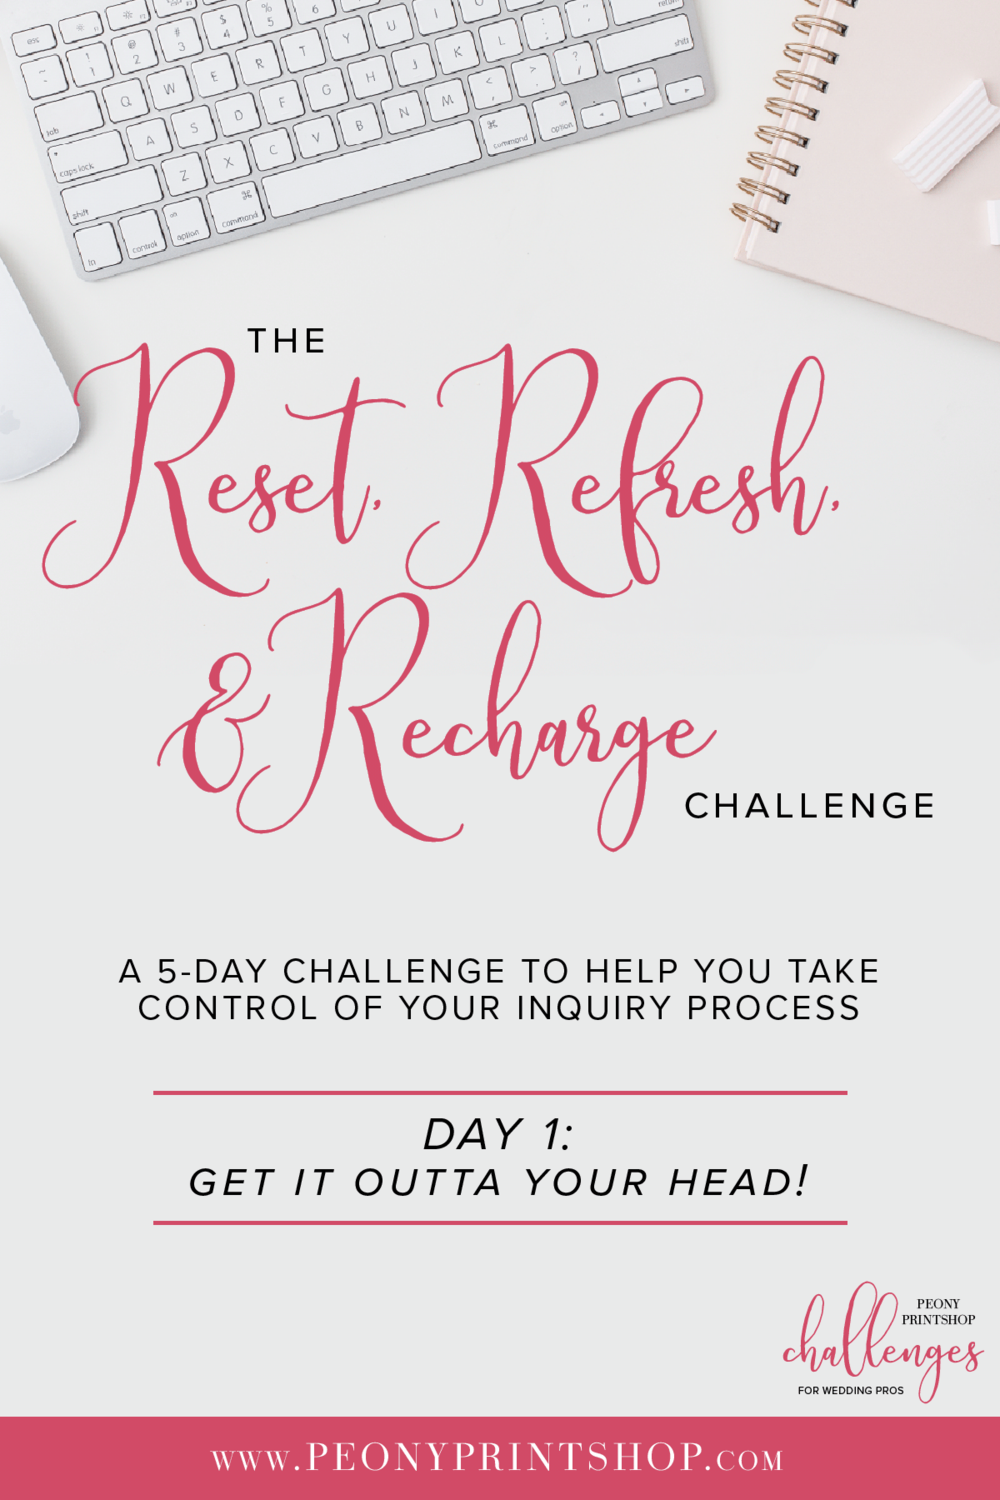 Reset, Refresh, & Recharge Challenge at PeonyPrinsthop.com | Day 1: Get It Outta Your Head